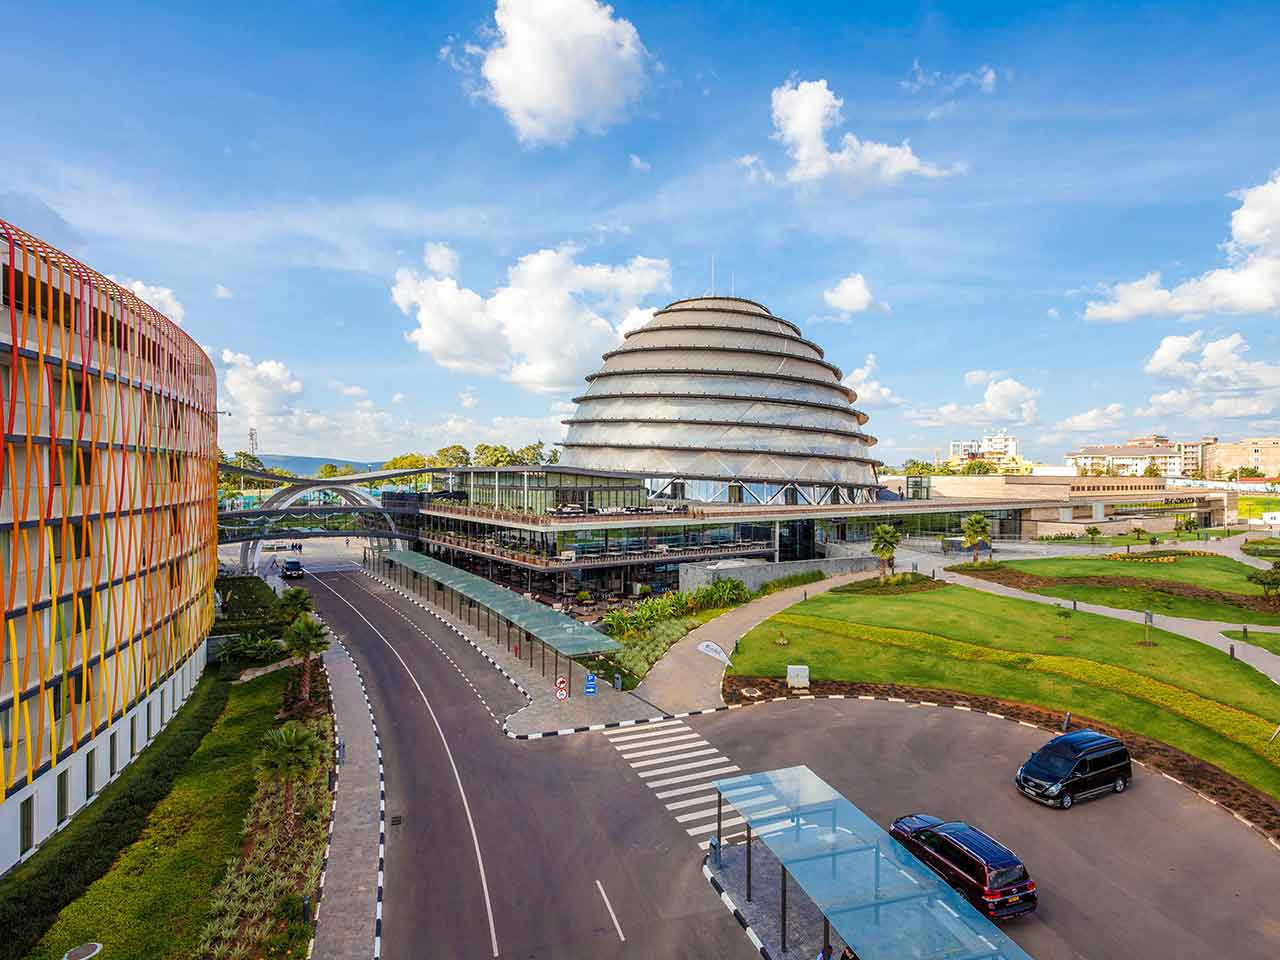 Hotels in Kigali | Accommodation Facilities in Kigali